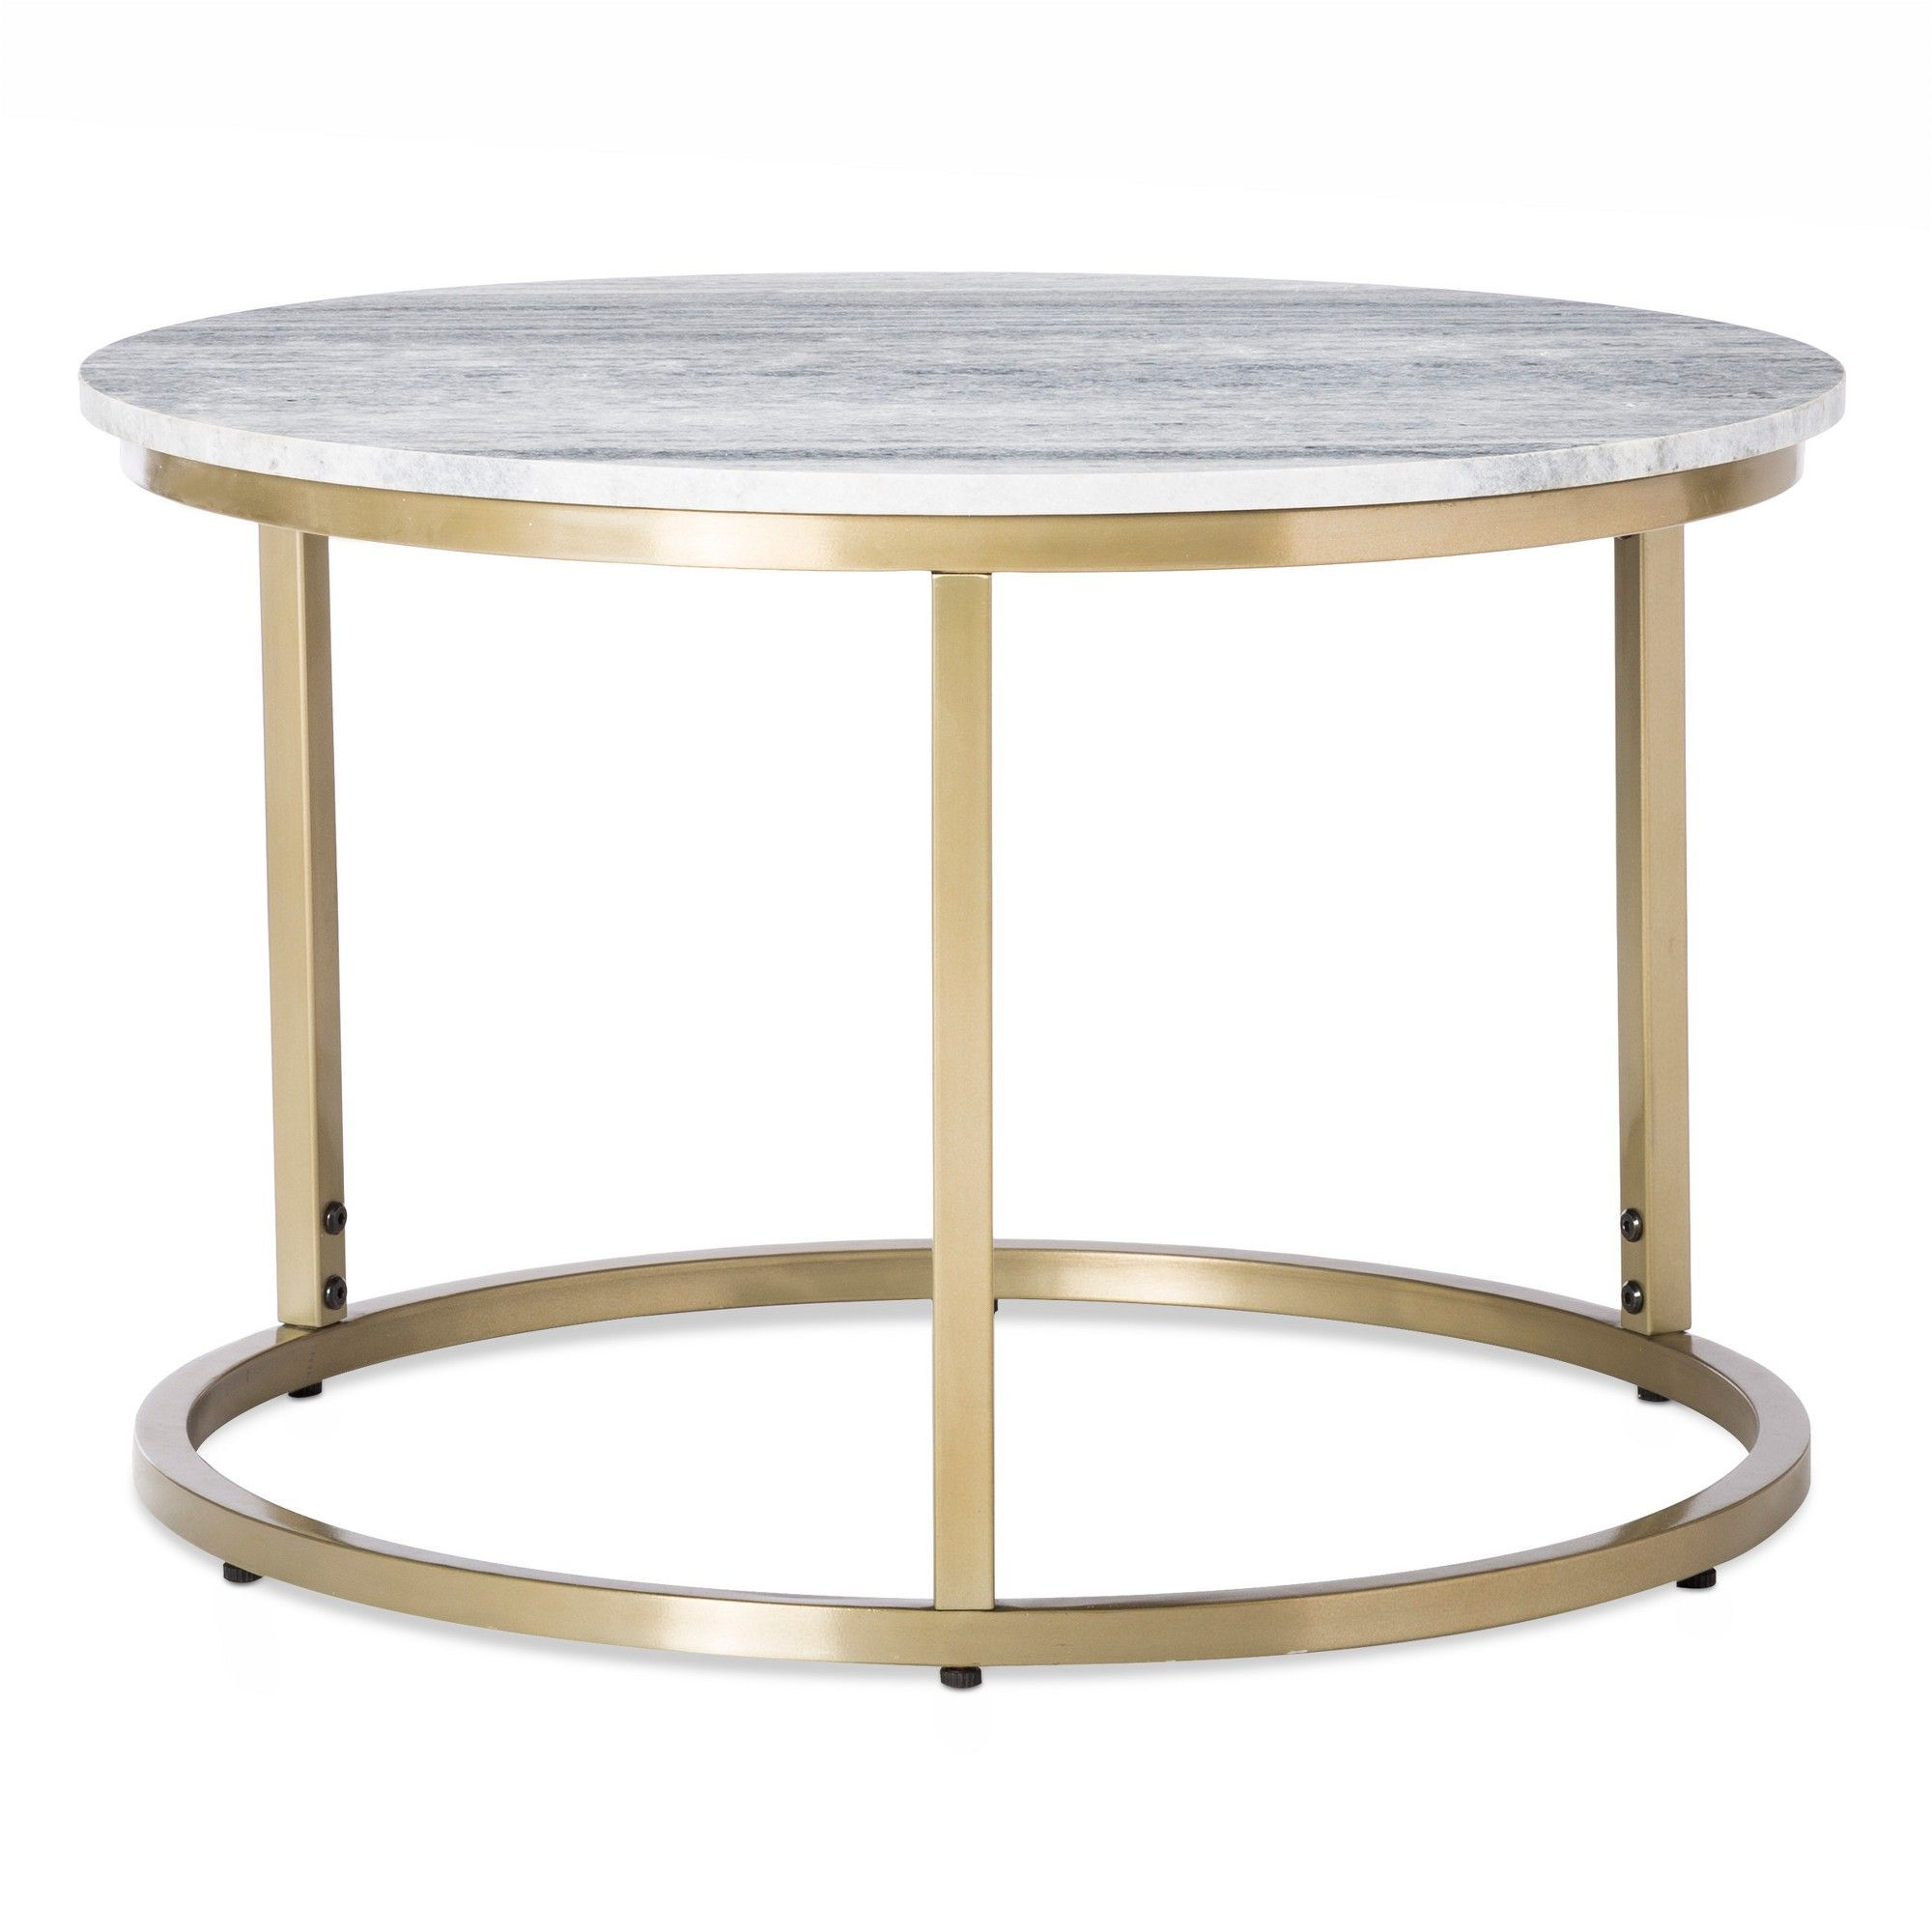 small marble top coffee table gold threshold products accent metal tables glass pedestal side silver end aluminum patio furniture home goods dining room dark cherry stand dale